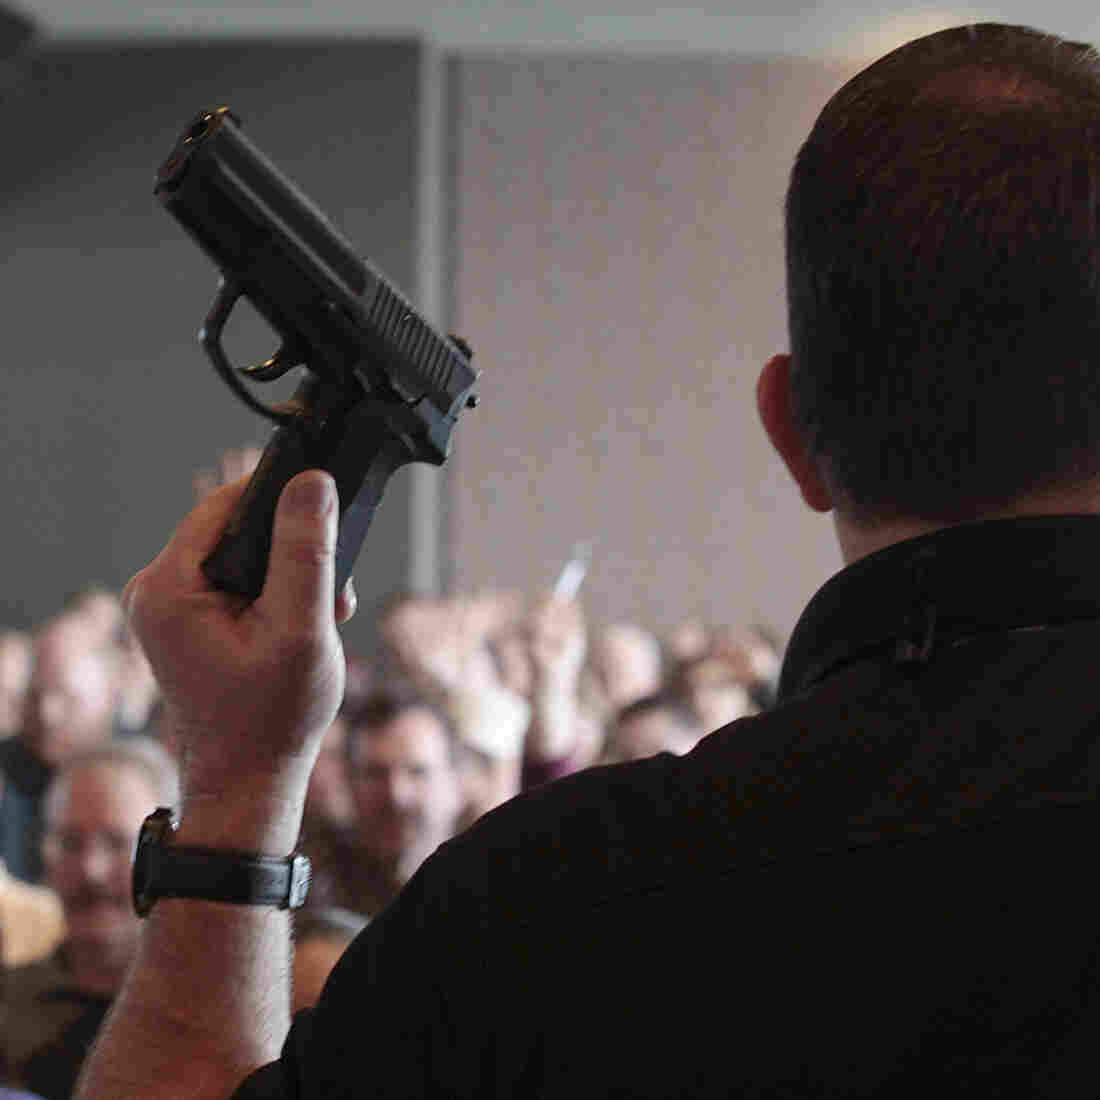 Firearm instructor Clark Aposhian conducts a concealed-weapons class for teachers, sponsored by the Utah Shooting Sports Council, in West Valley City, Utah. Across the country, school districts and other entities are hoping to better prepare staff to respond in a shooting situation.